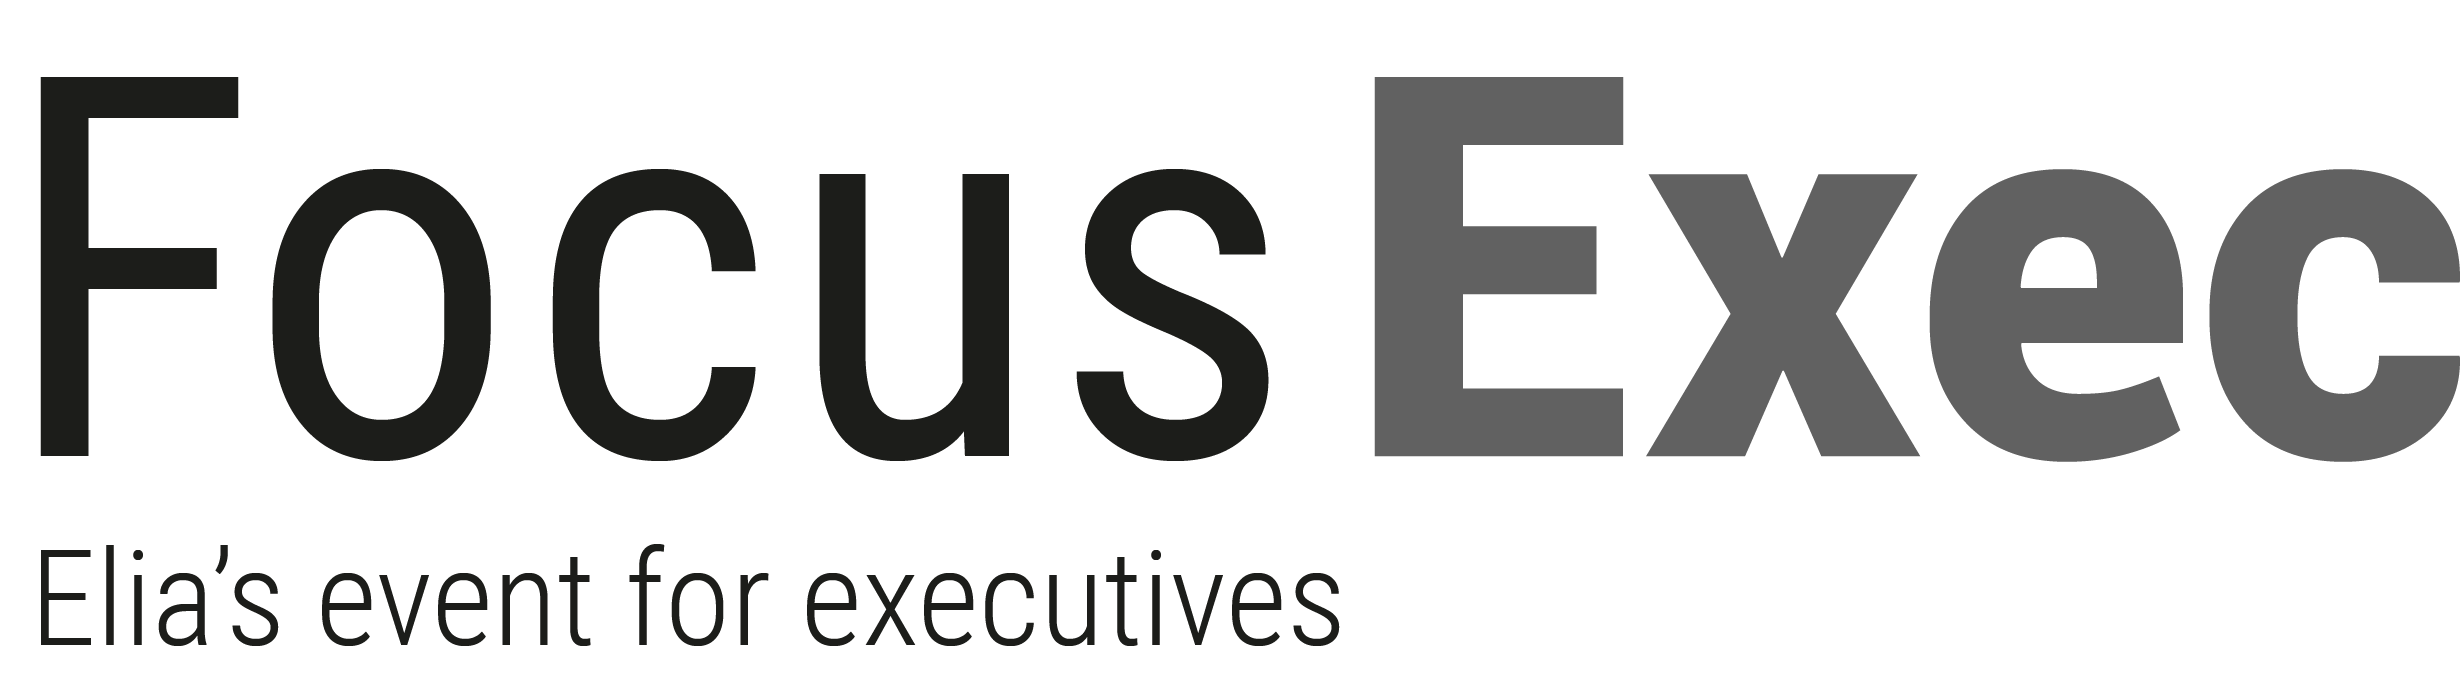 Elia's Focus on Executives